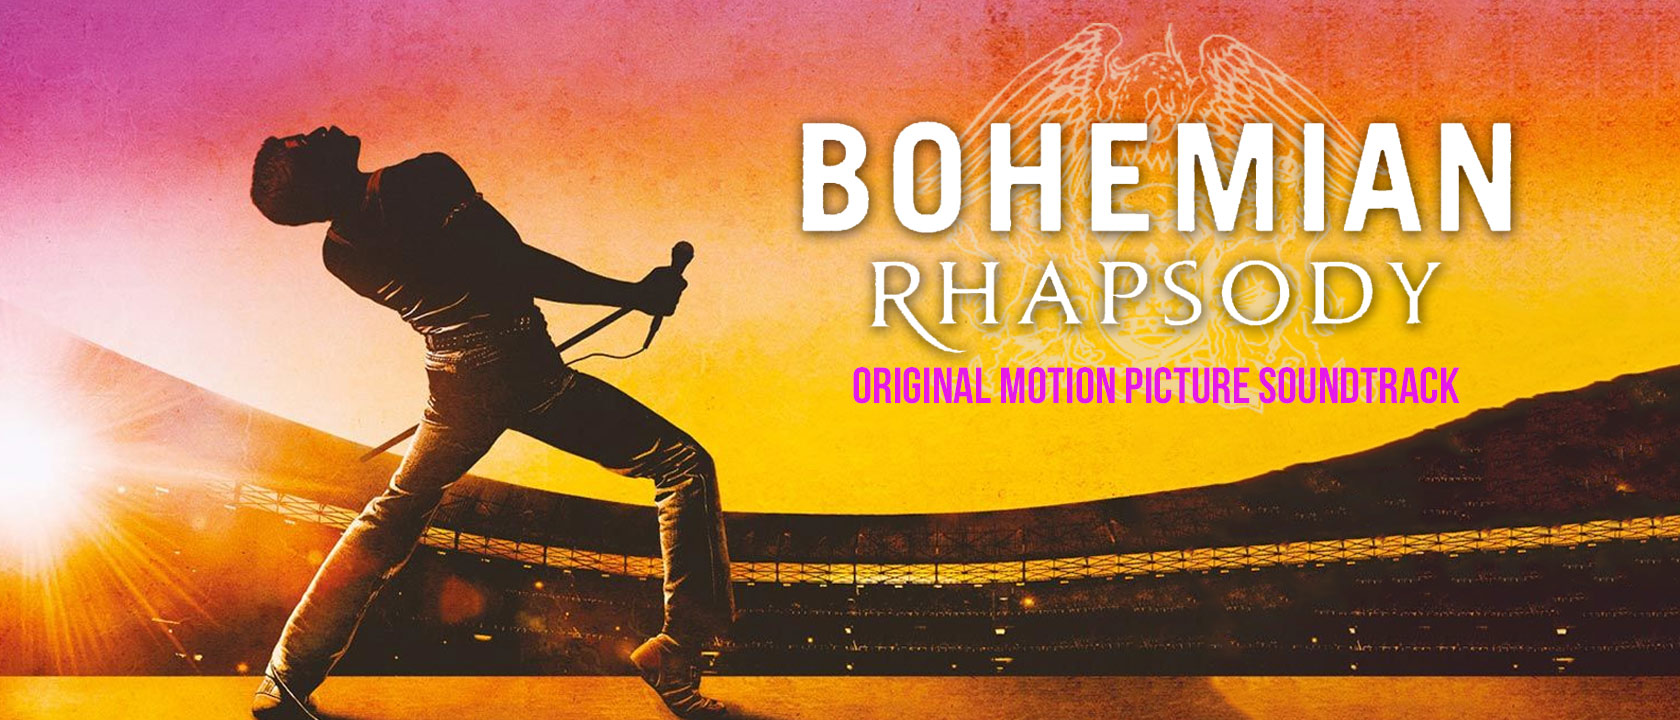 Bohemian Rhapsody Original Motion Picture Soundtrack banner